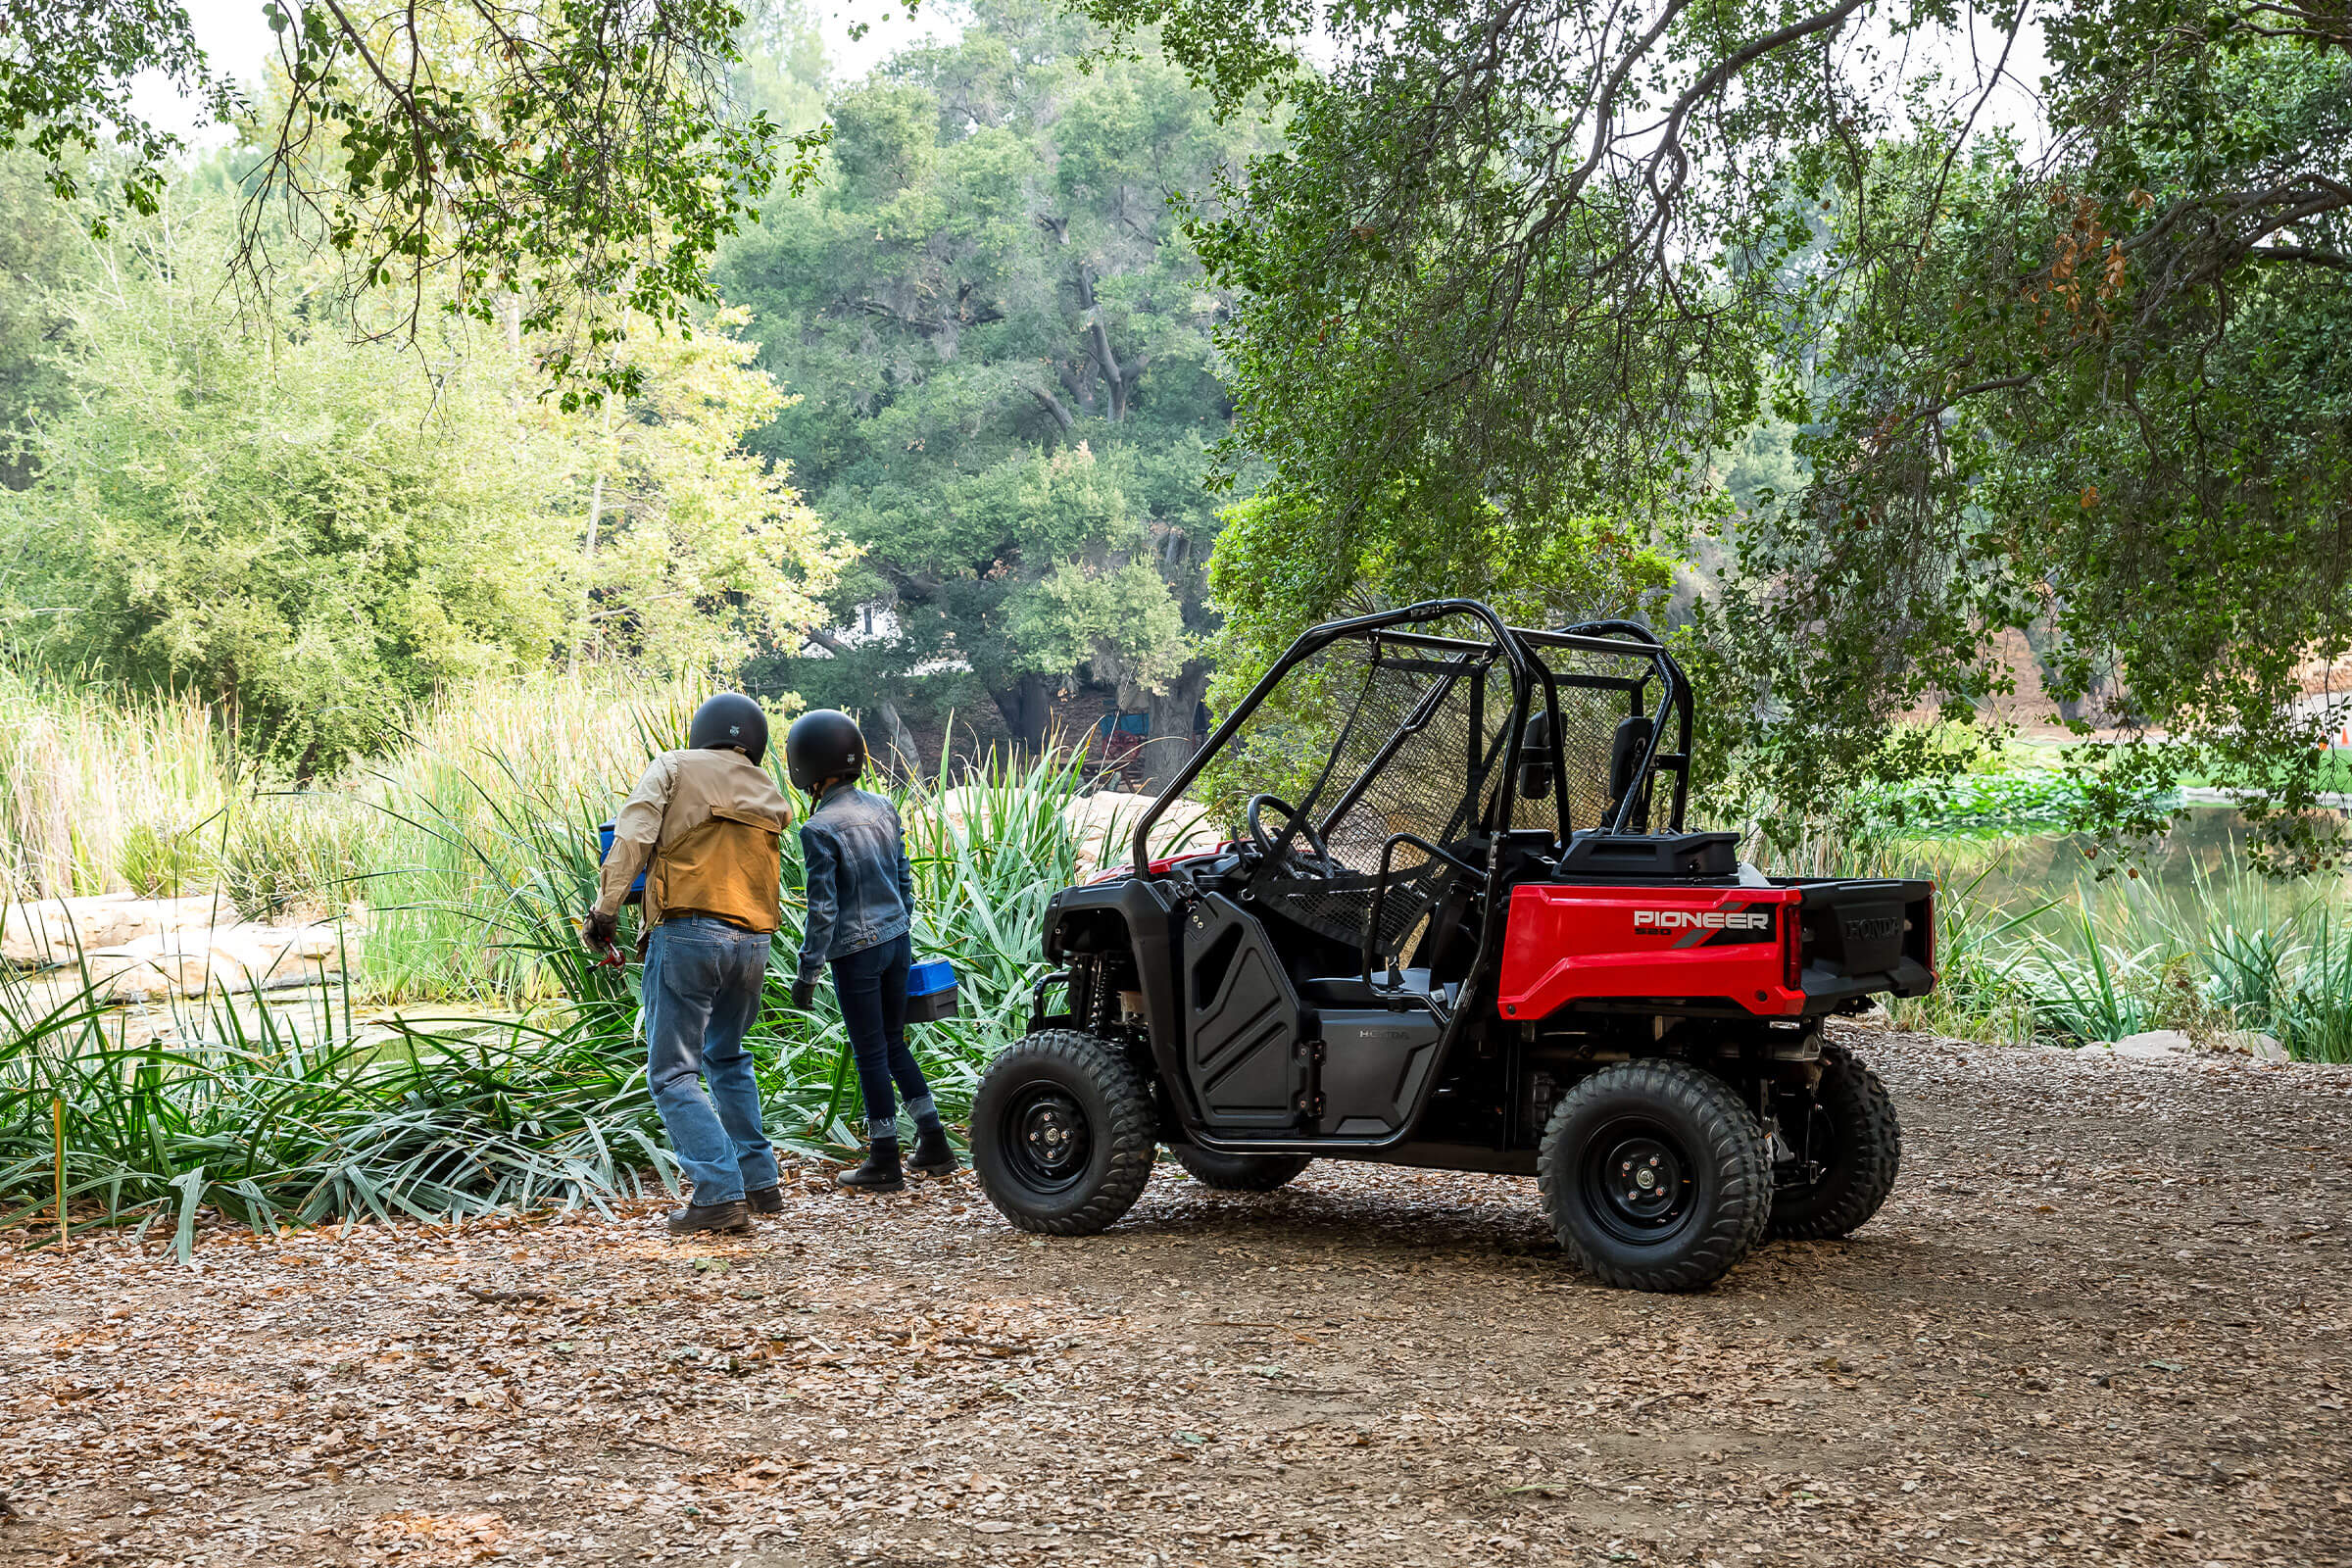 2021 Honda Pioneer 520 in Johnson City, Tennessee - Photo 2